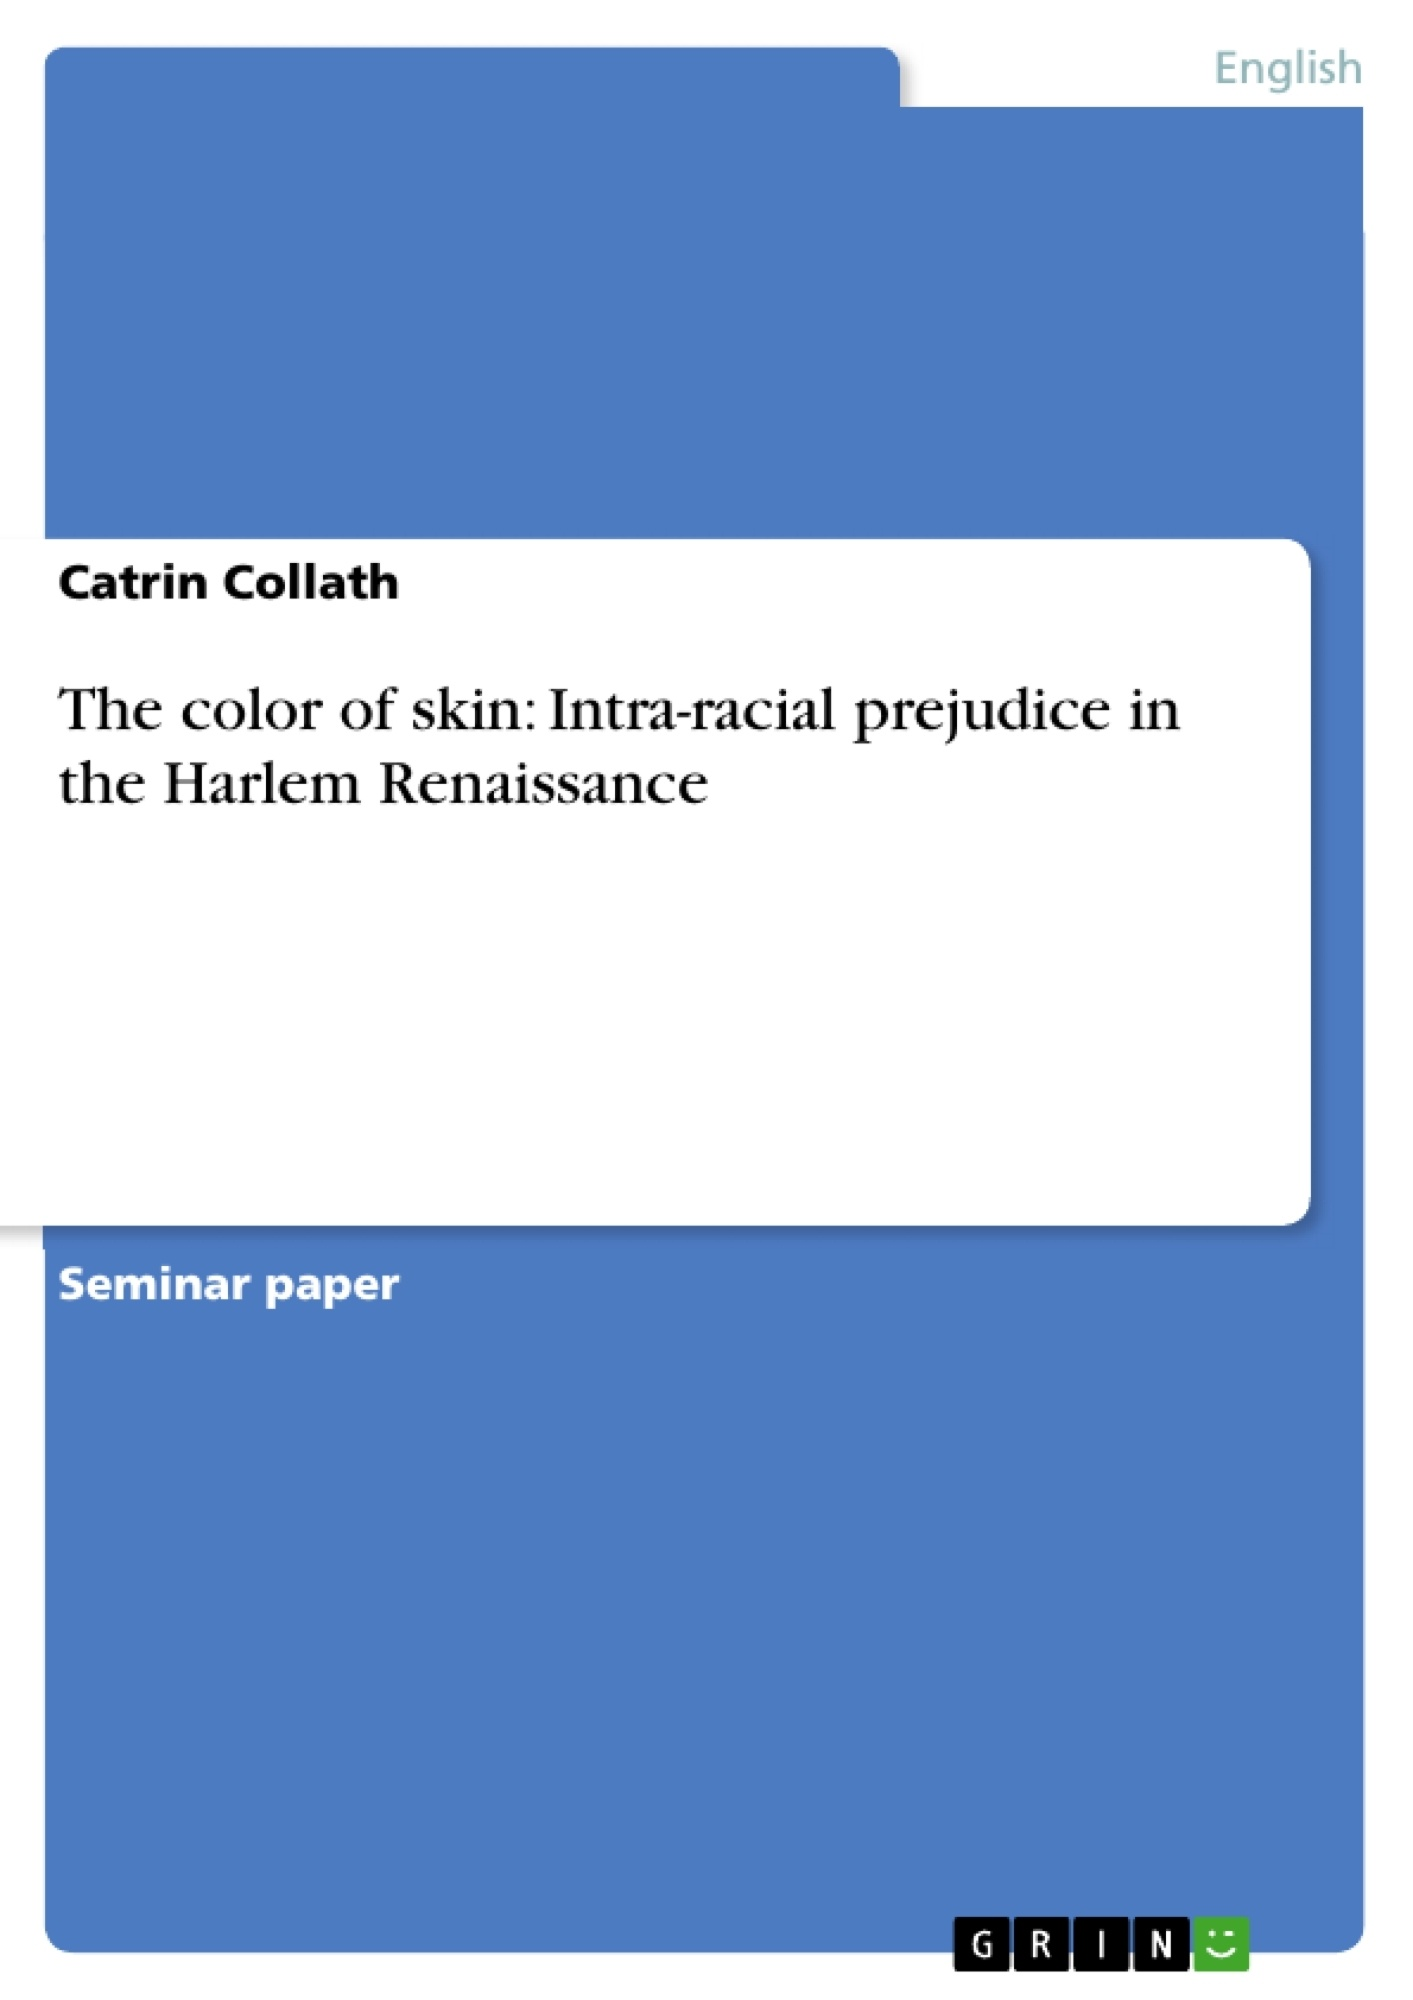 Title: The color of skin: Intra-racial prejudice in the Harlem Renaissance